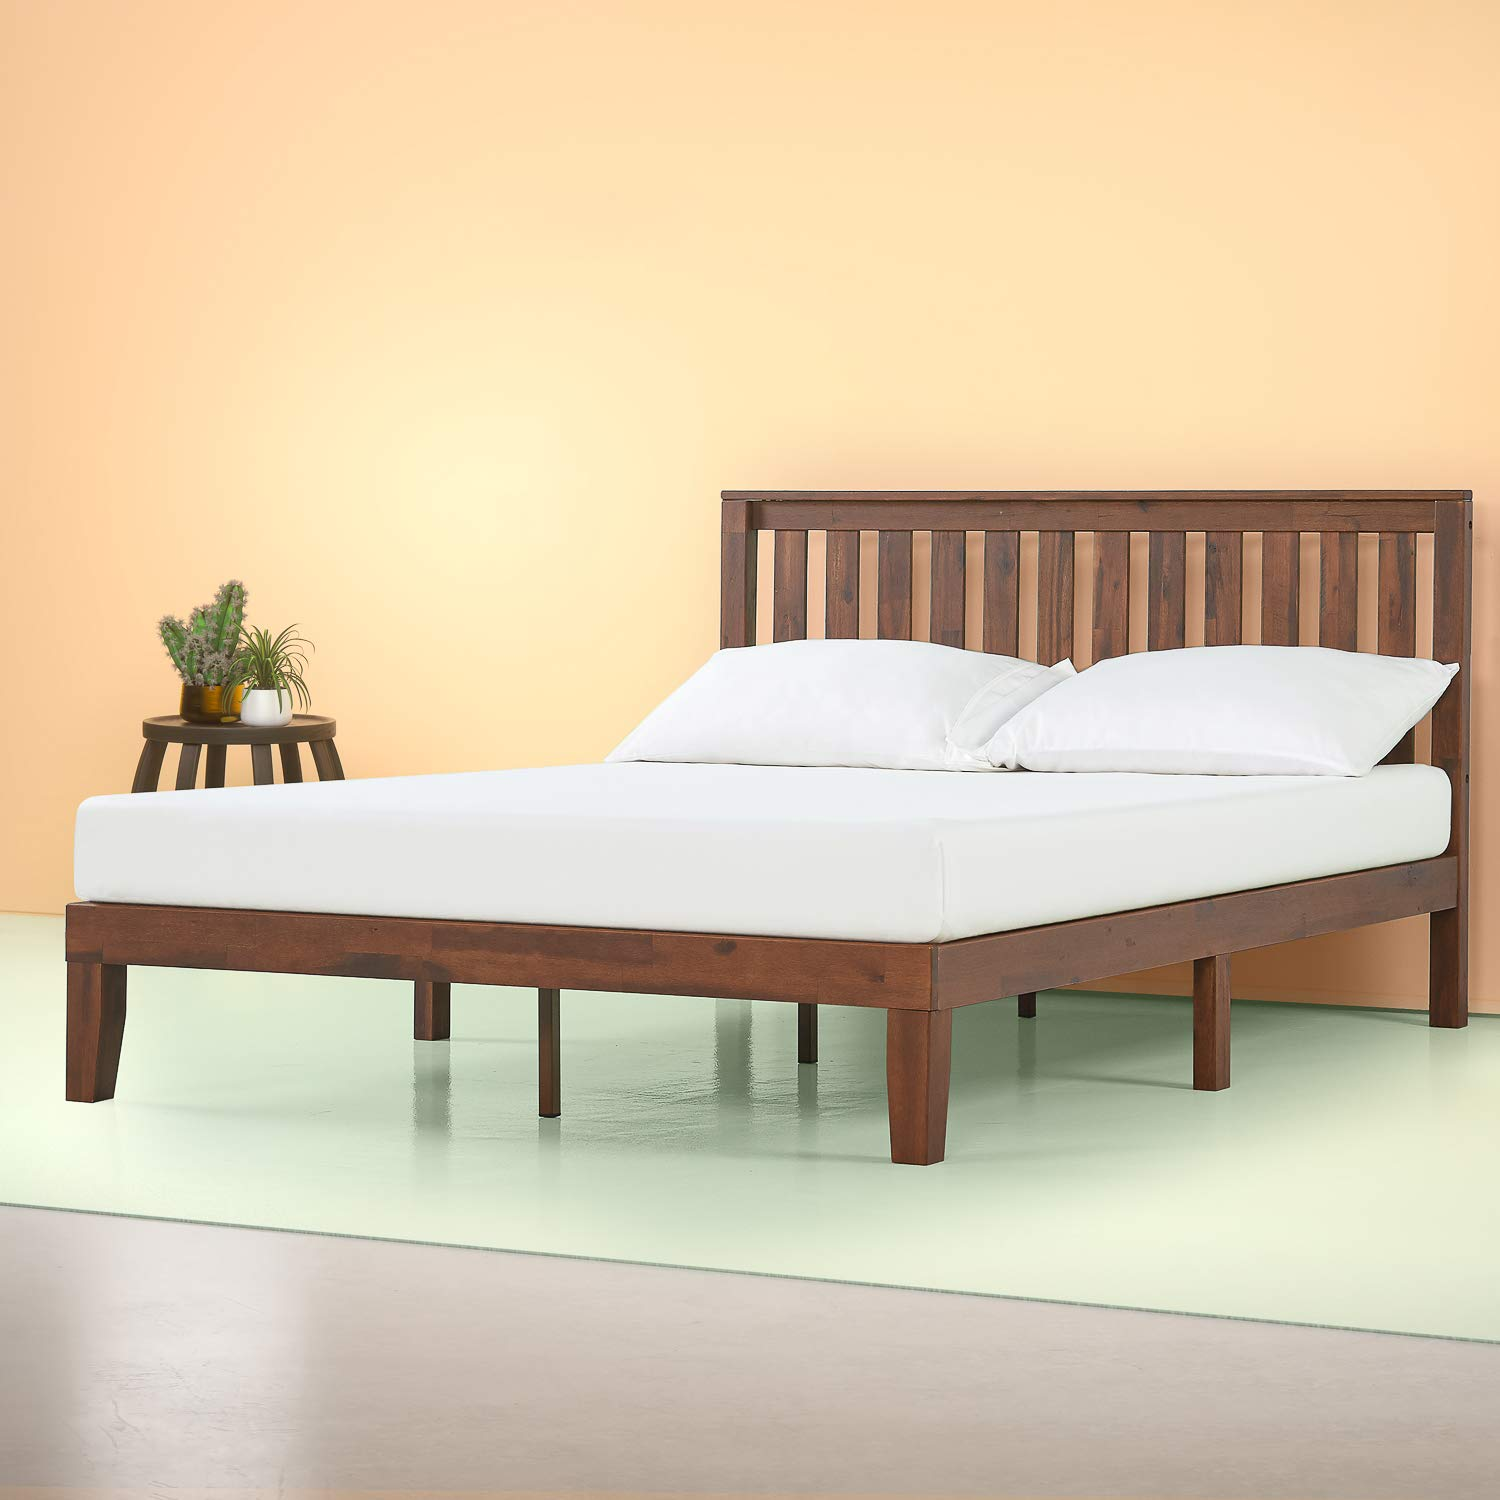 Zinus 12 Inch Solid Wood Platform Bed with Headboard / No Box Spring Needed / Wood Slat Support / Antique Espresso Finish, King by Zinus